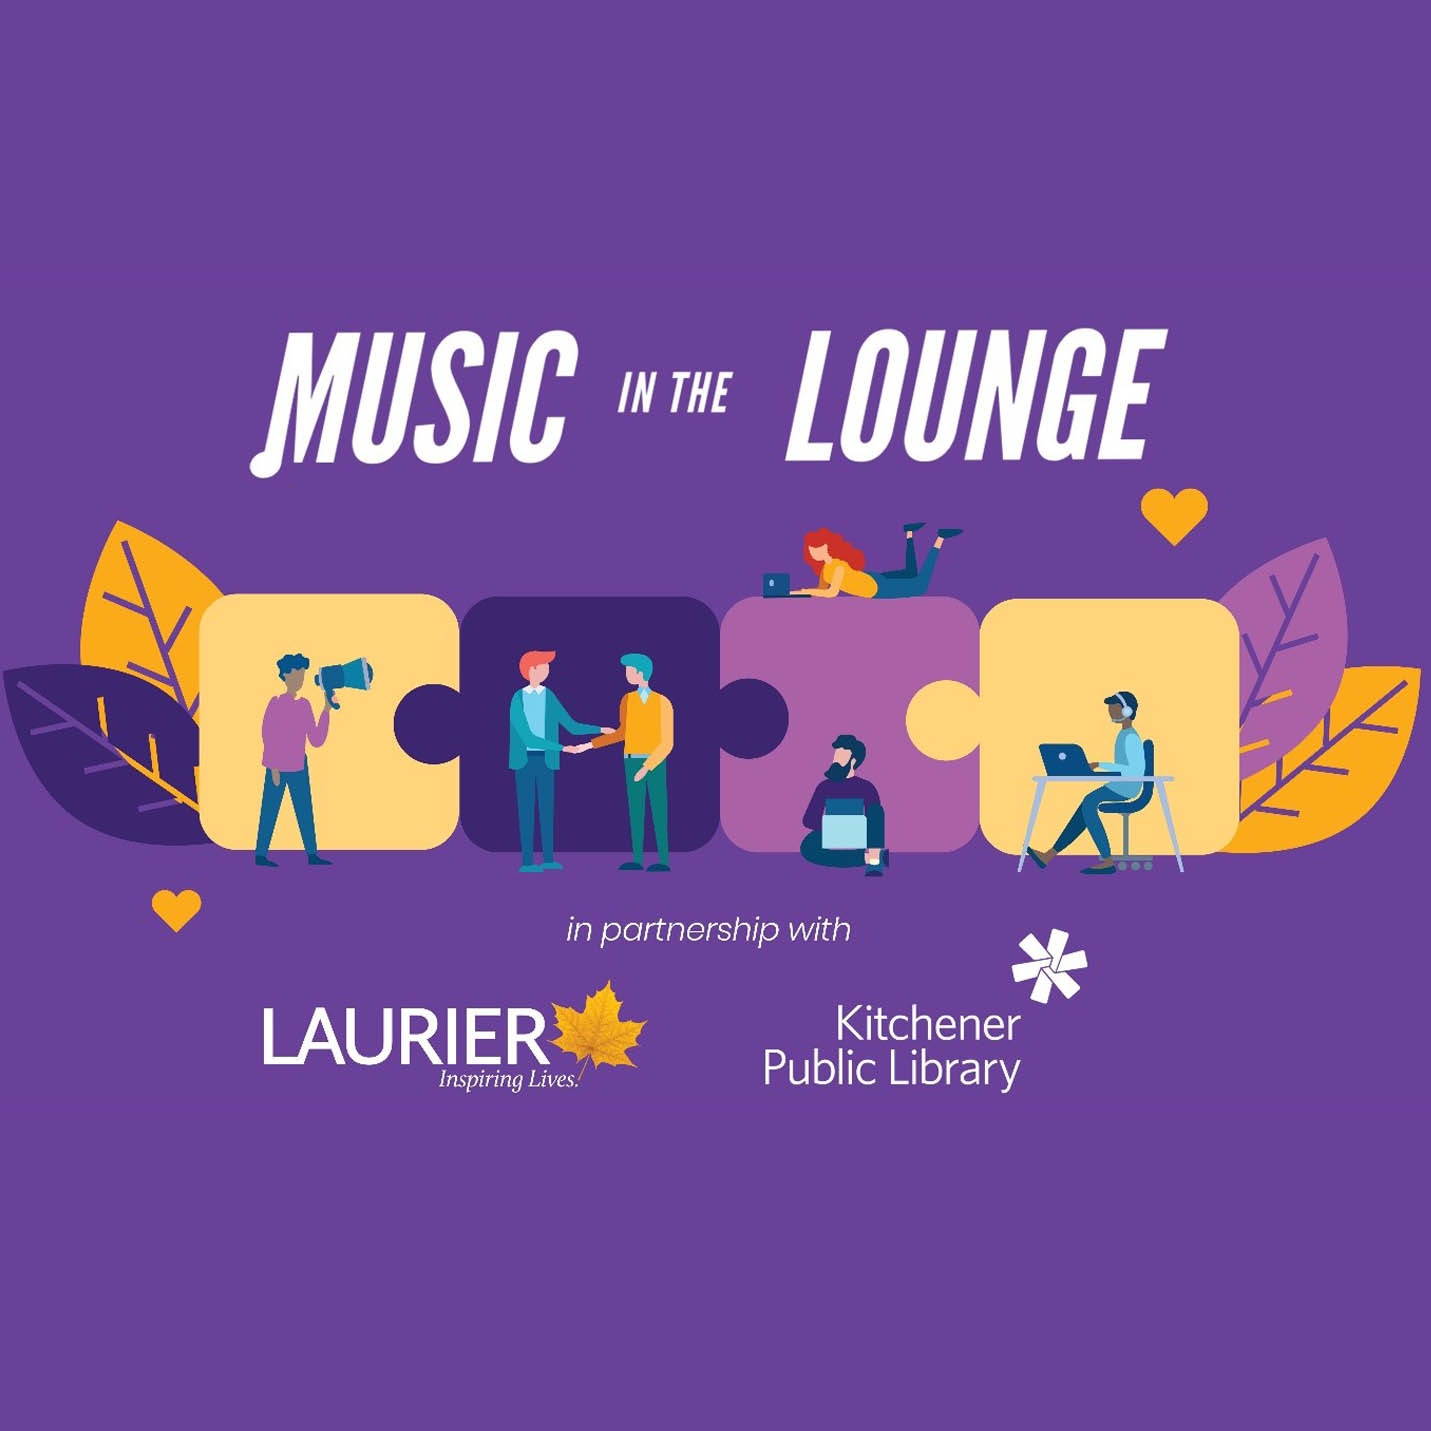 Laurier partners with Kitchener Public Library to offer a series of virtual concerts